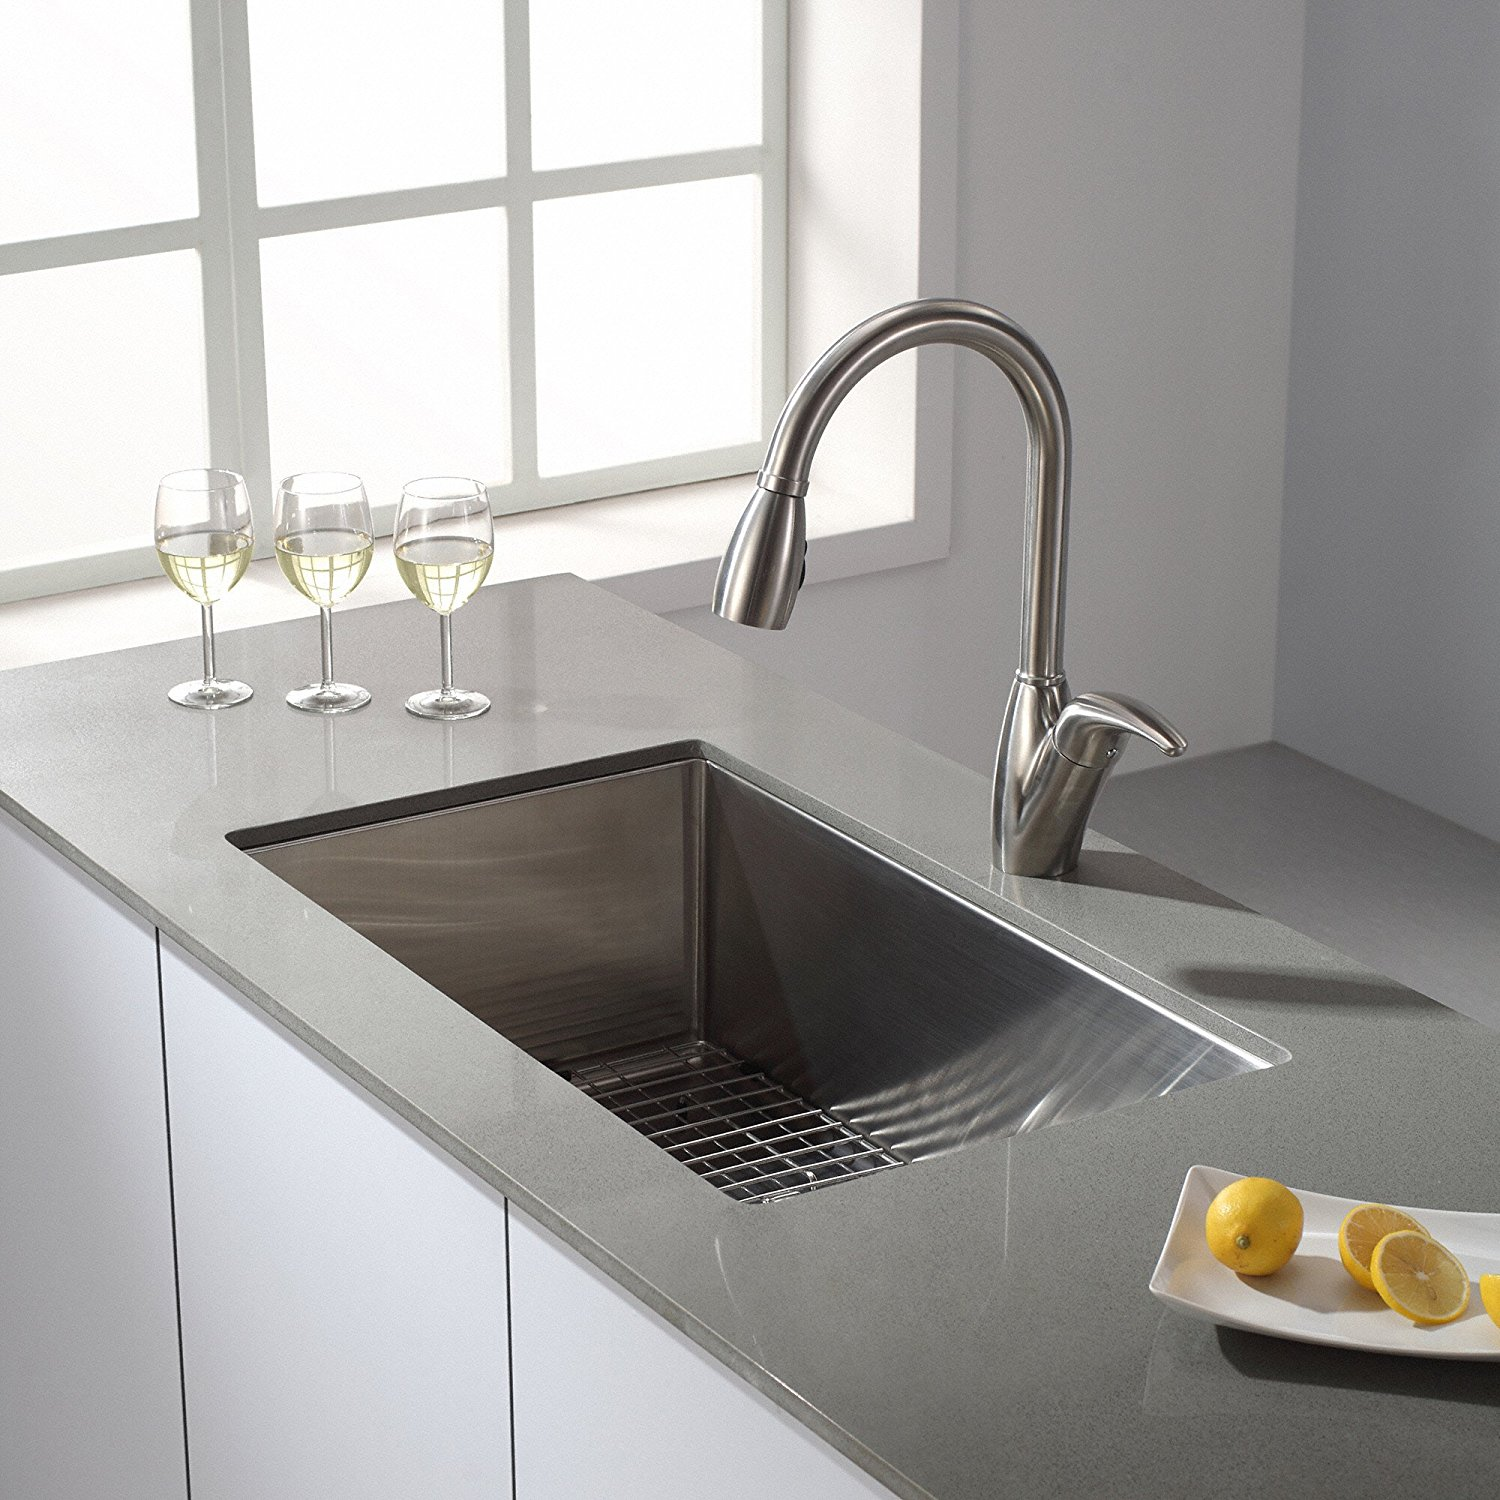 kraus khu 100 30 kitchen sink top 10 best single bowl kitchen sinks 2018 reviews  editors pick   rh   wearetop10 com